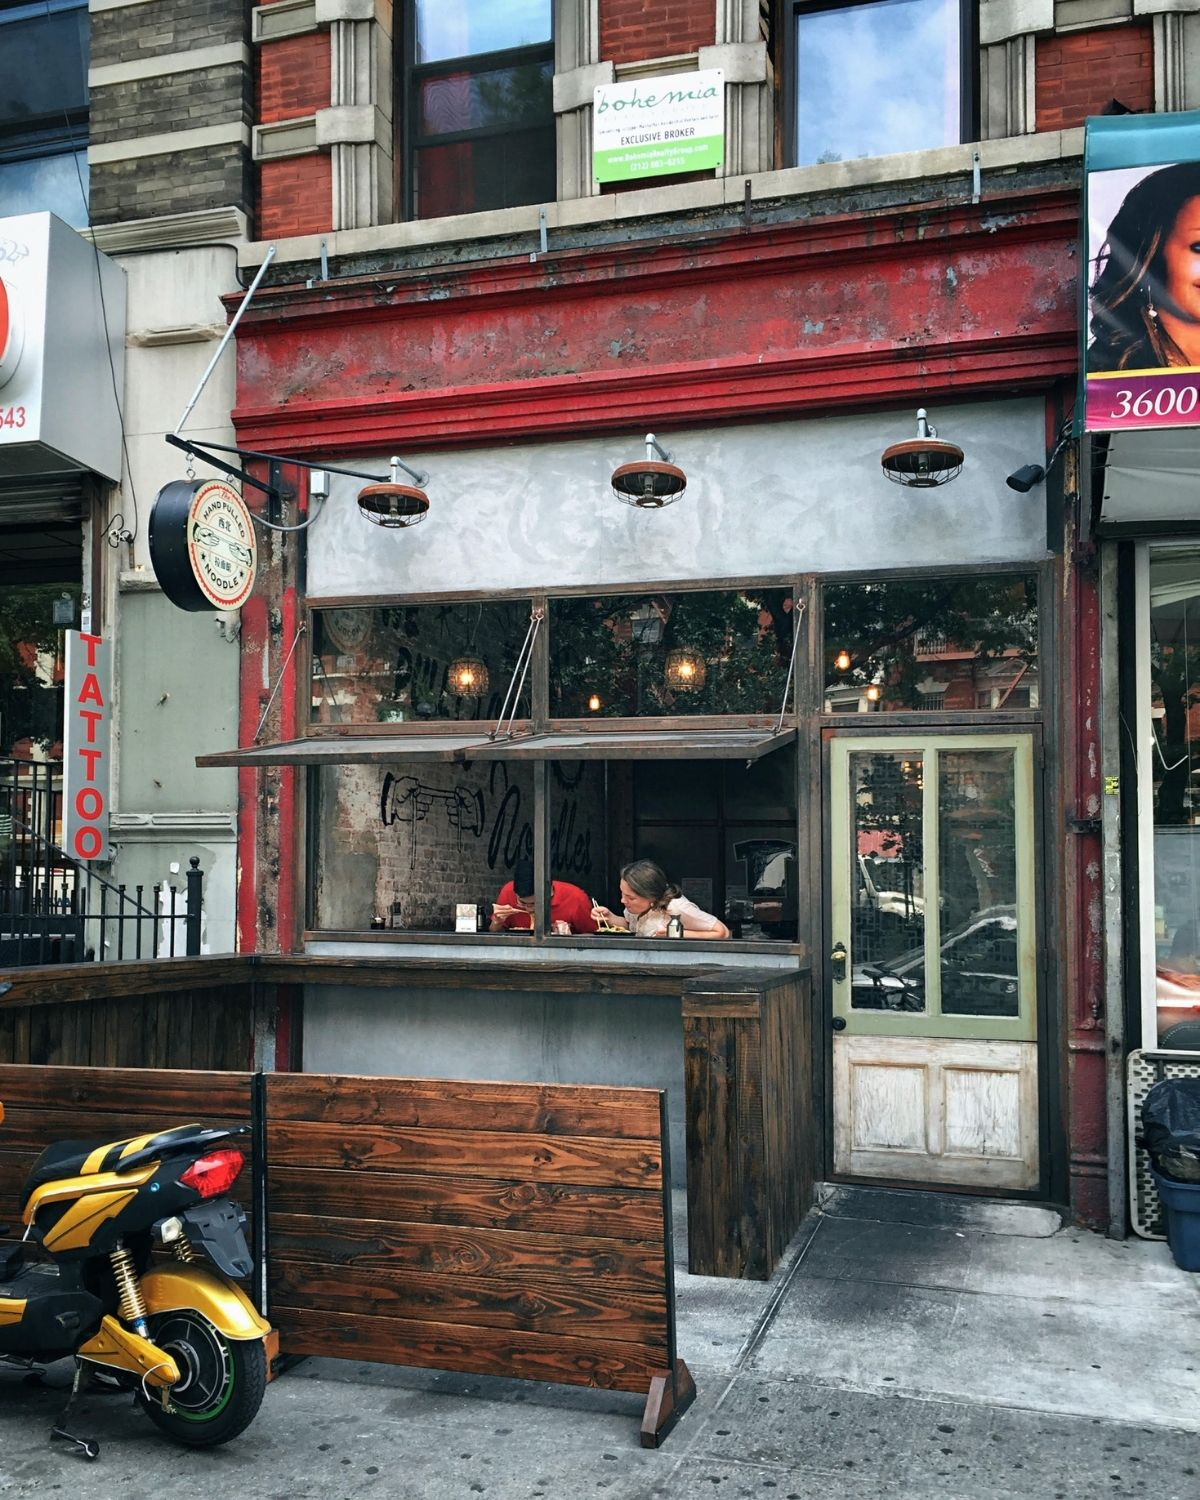 The Handpulled Noodle Restaurant in New York City